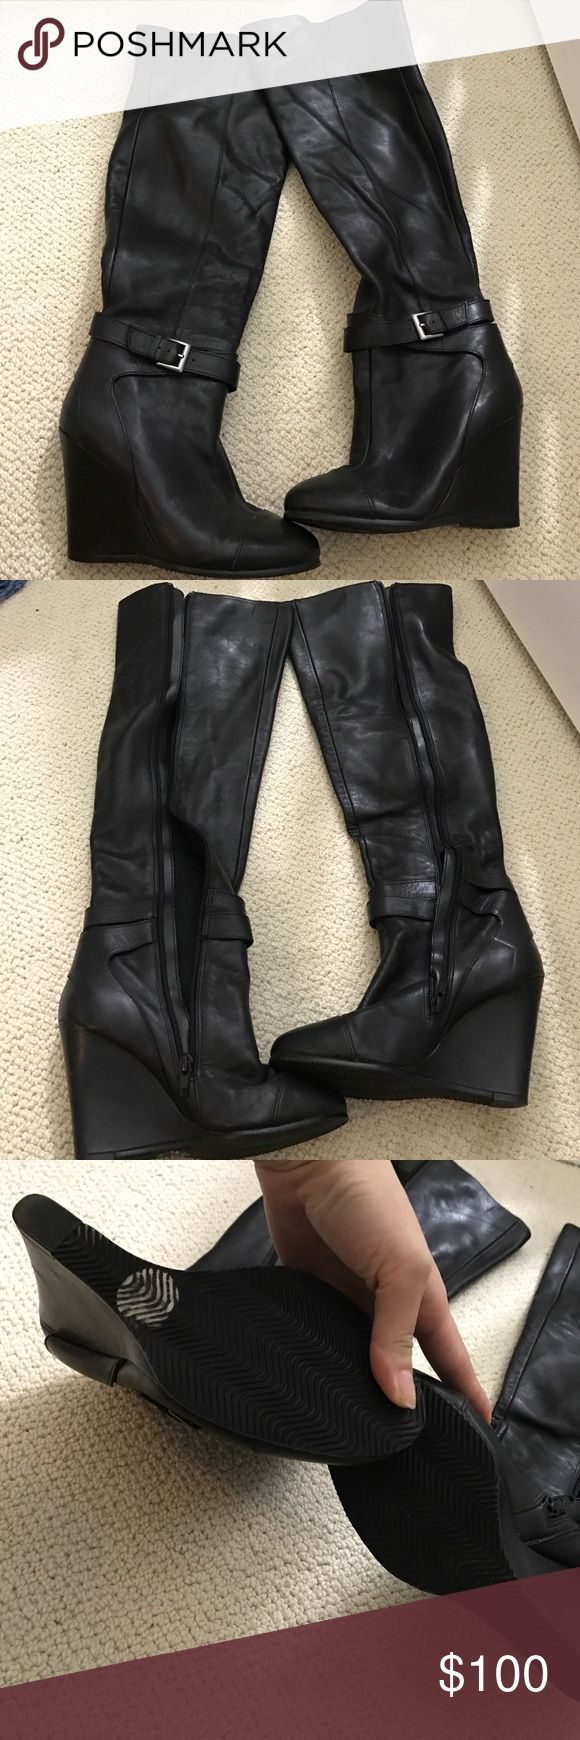 New Kelsi Dagger over the knee wedge boots size6.5 Brand new never worn. Only tried on in the house. Over the knee wedge leather boots from kelsi dagger. Kelsi Dagger Shoes Winter & Rain Boots